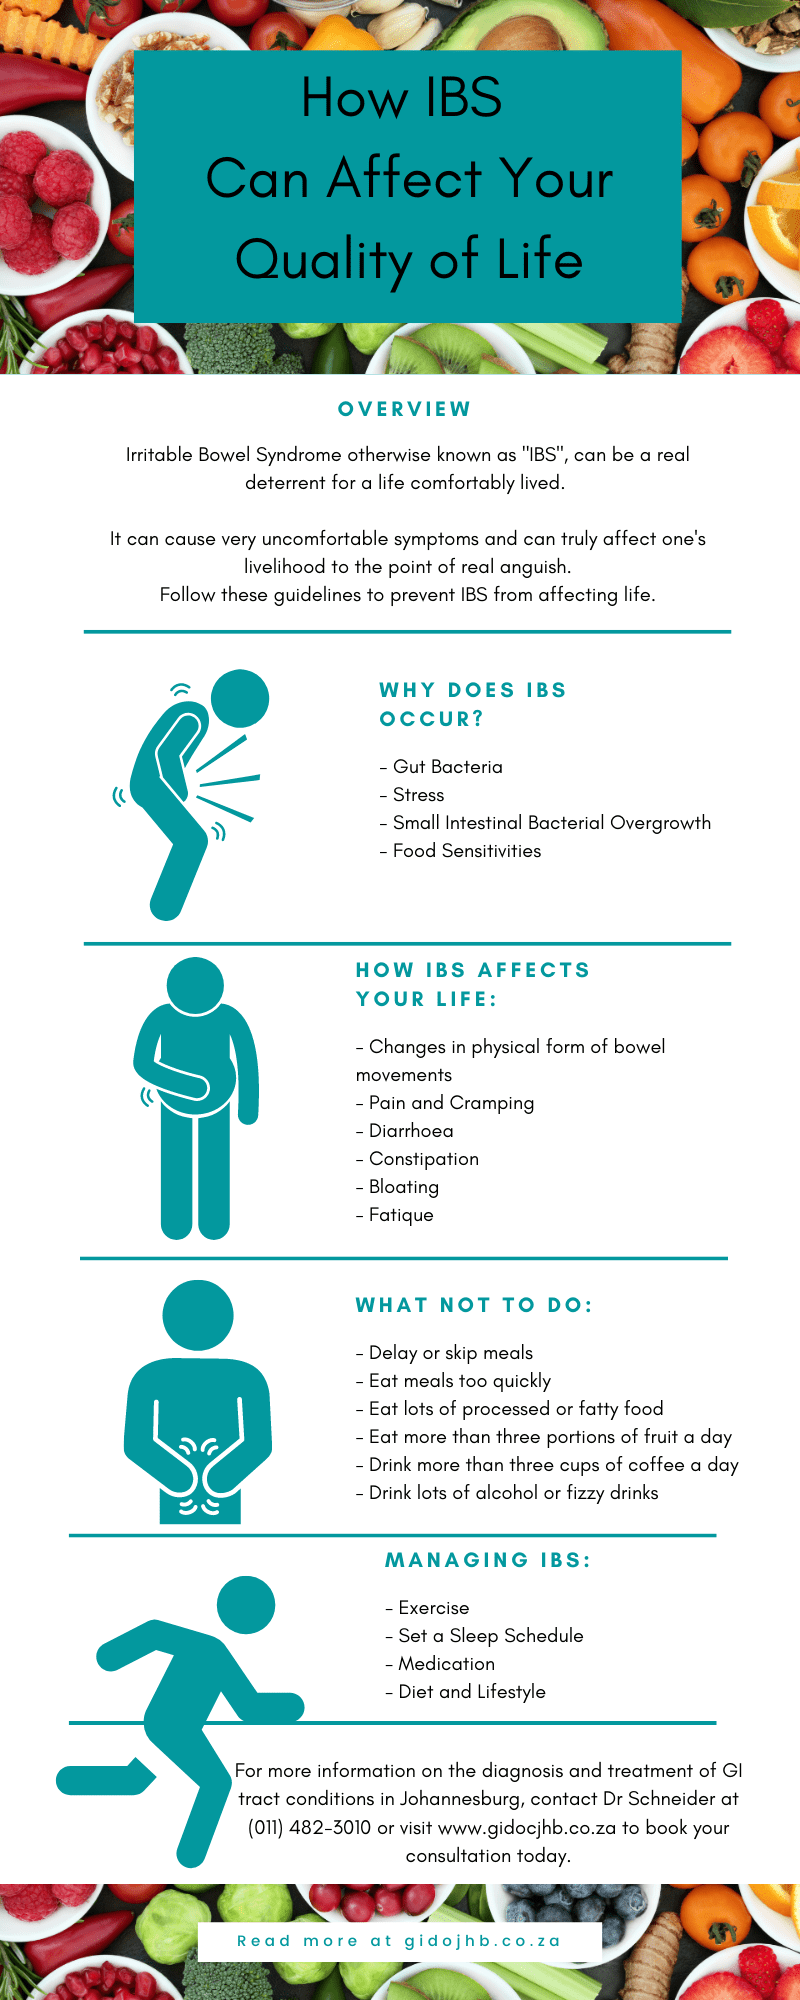 How IB can affect the quality of life 1 - How IBS Can Affect your Quality of Life and How to Prevent it